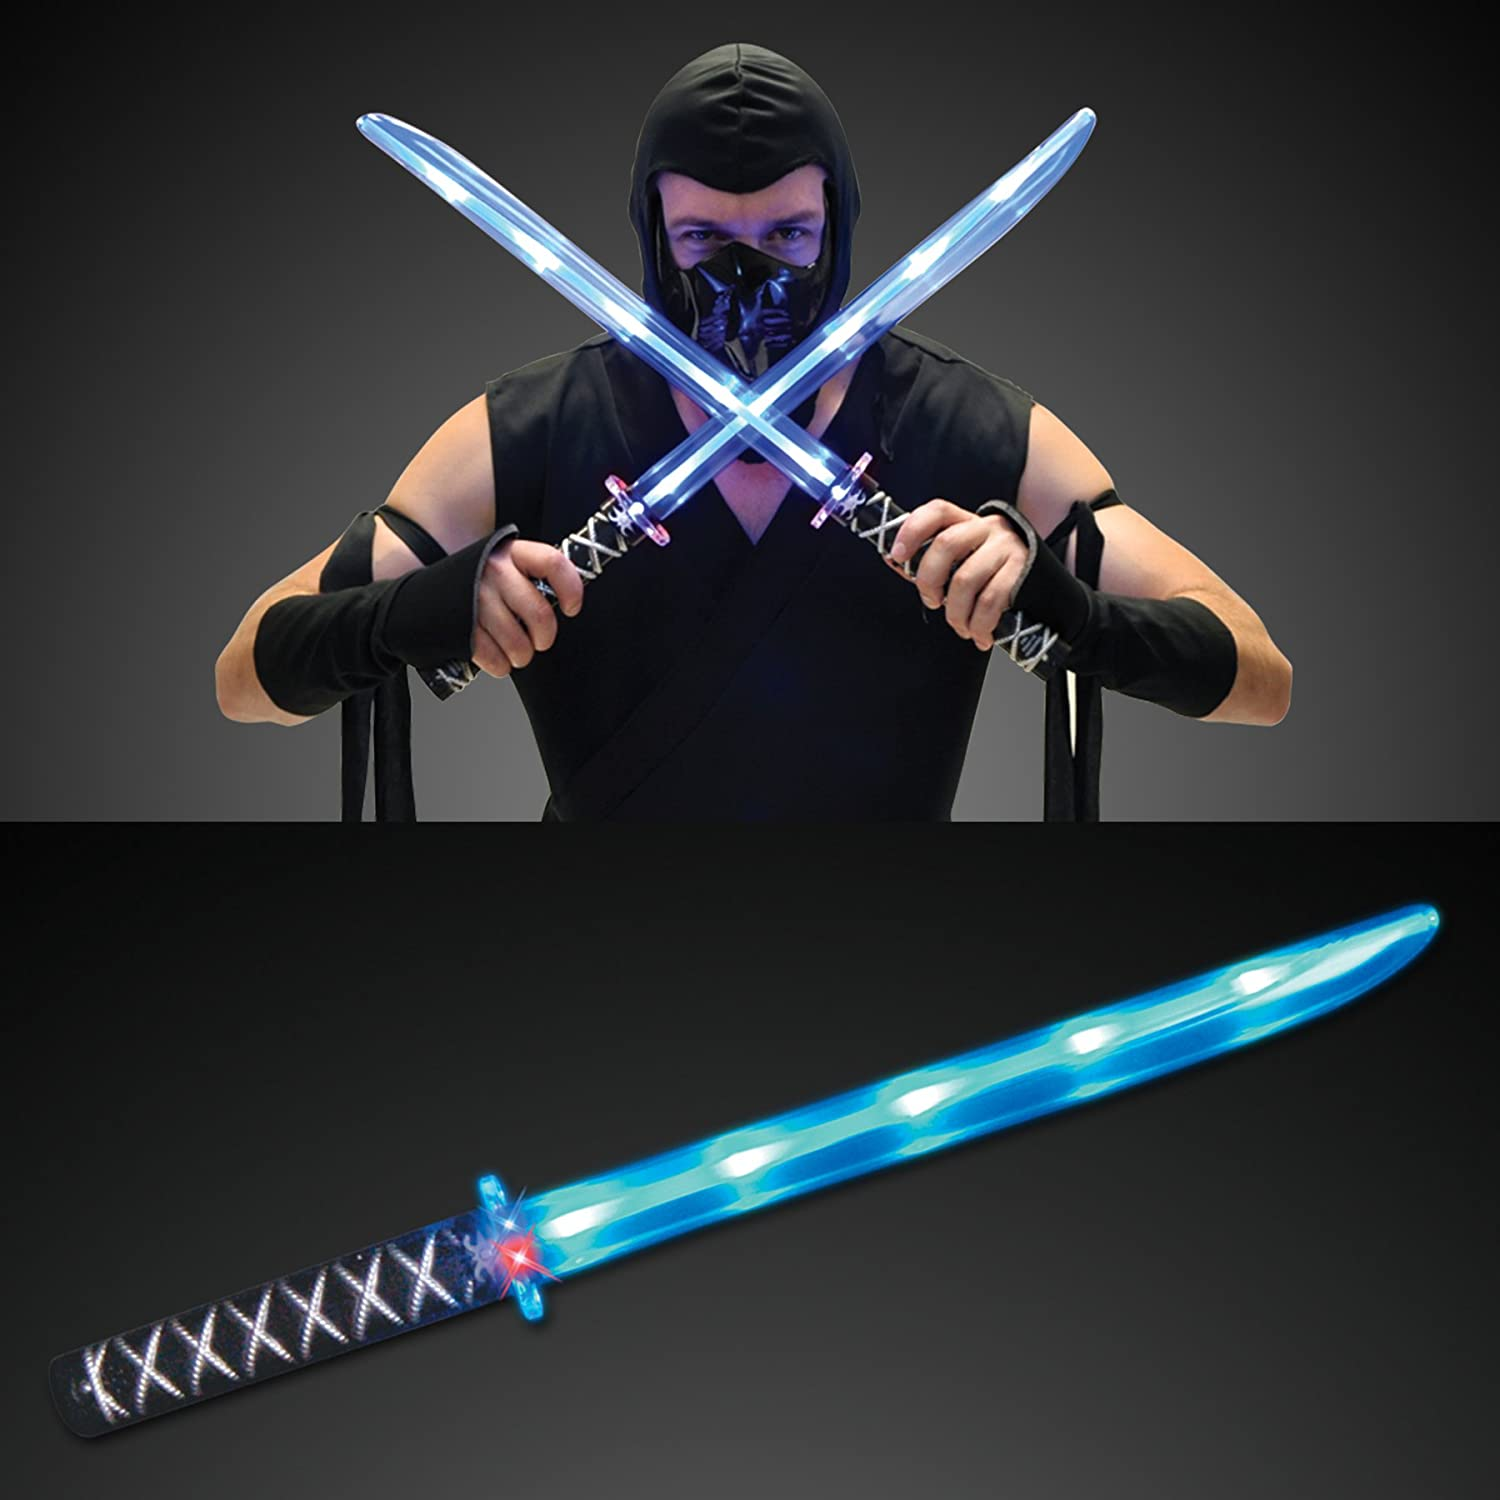 Ninja LED Light up Sword with Motion Activated Clanging Sounds